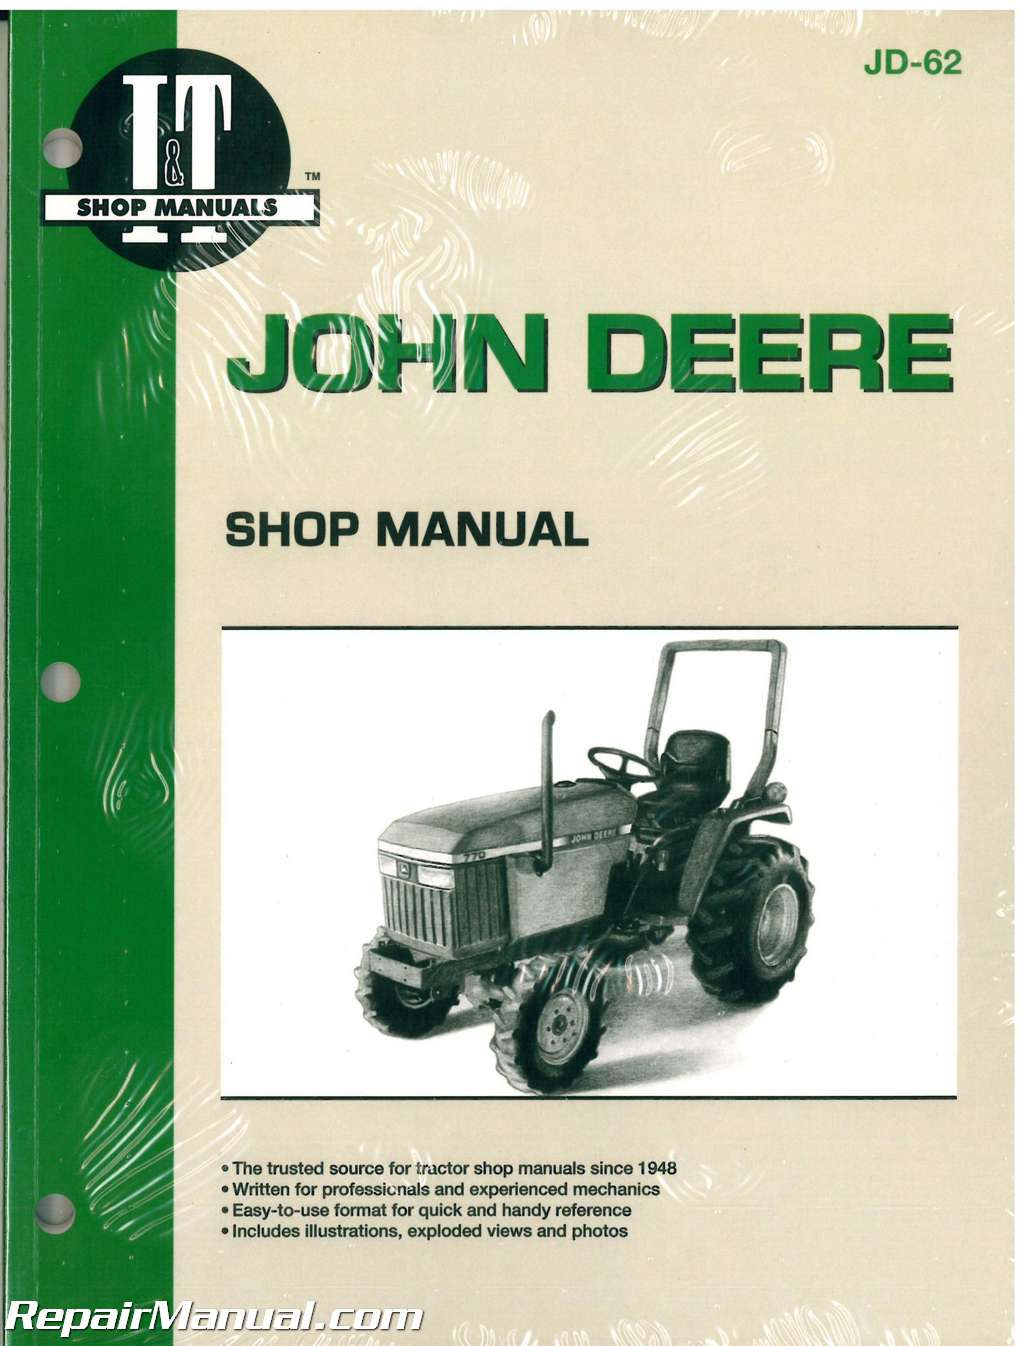 john deere 670 770 870 970 1070 tractor workshop service manual rh repairmanual com